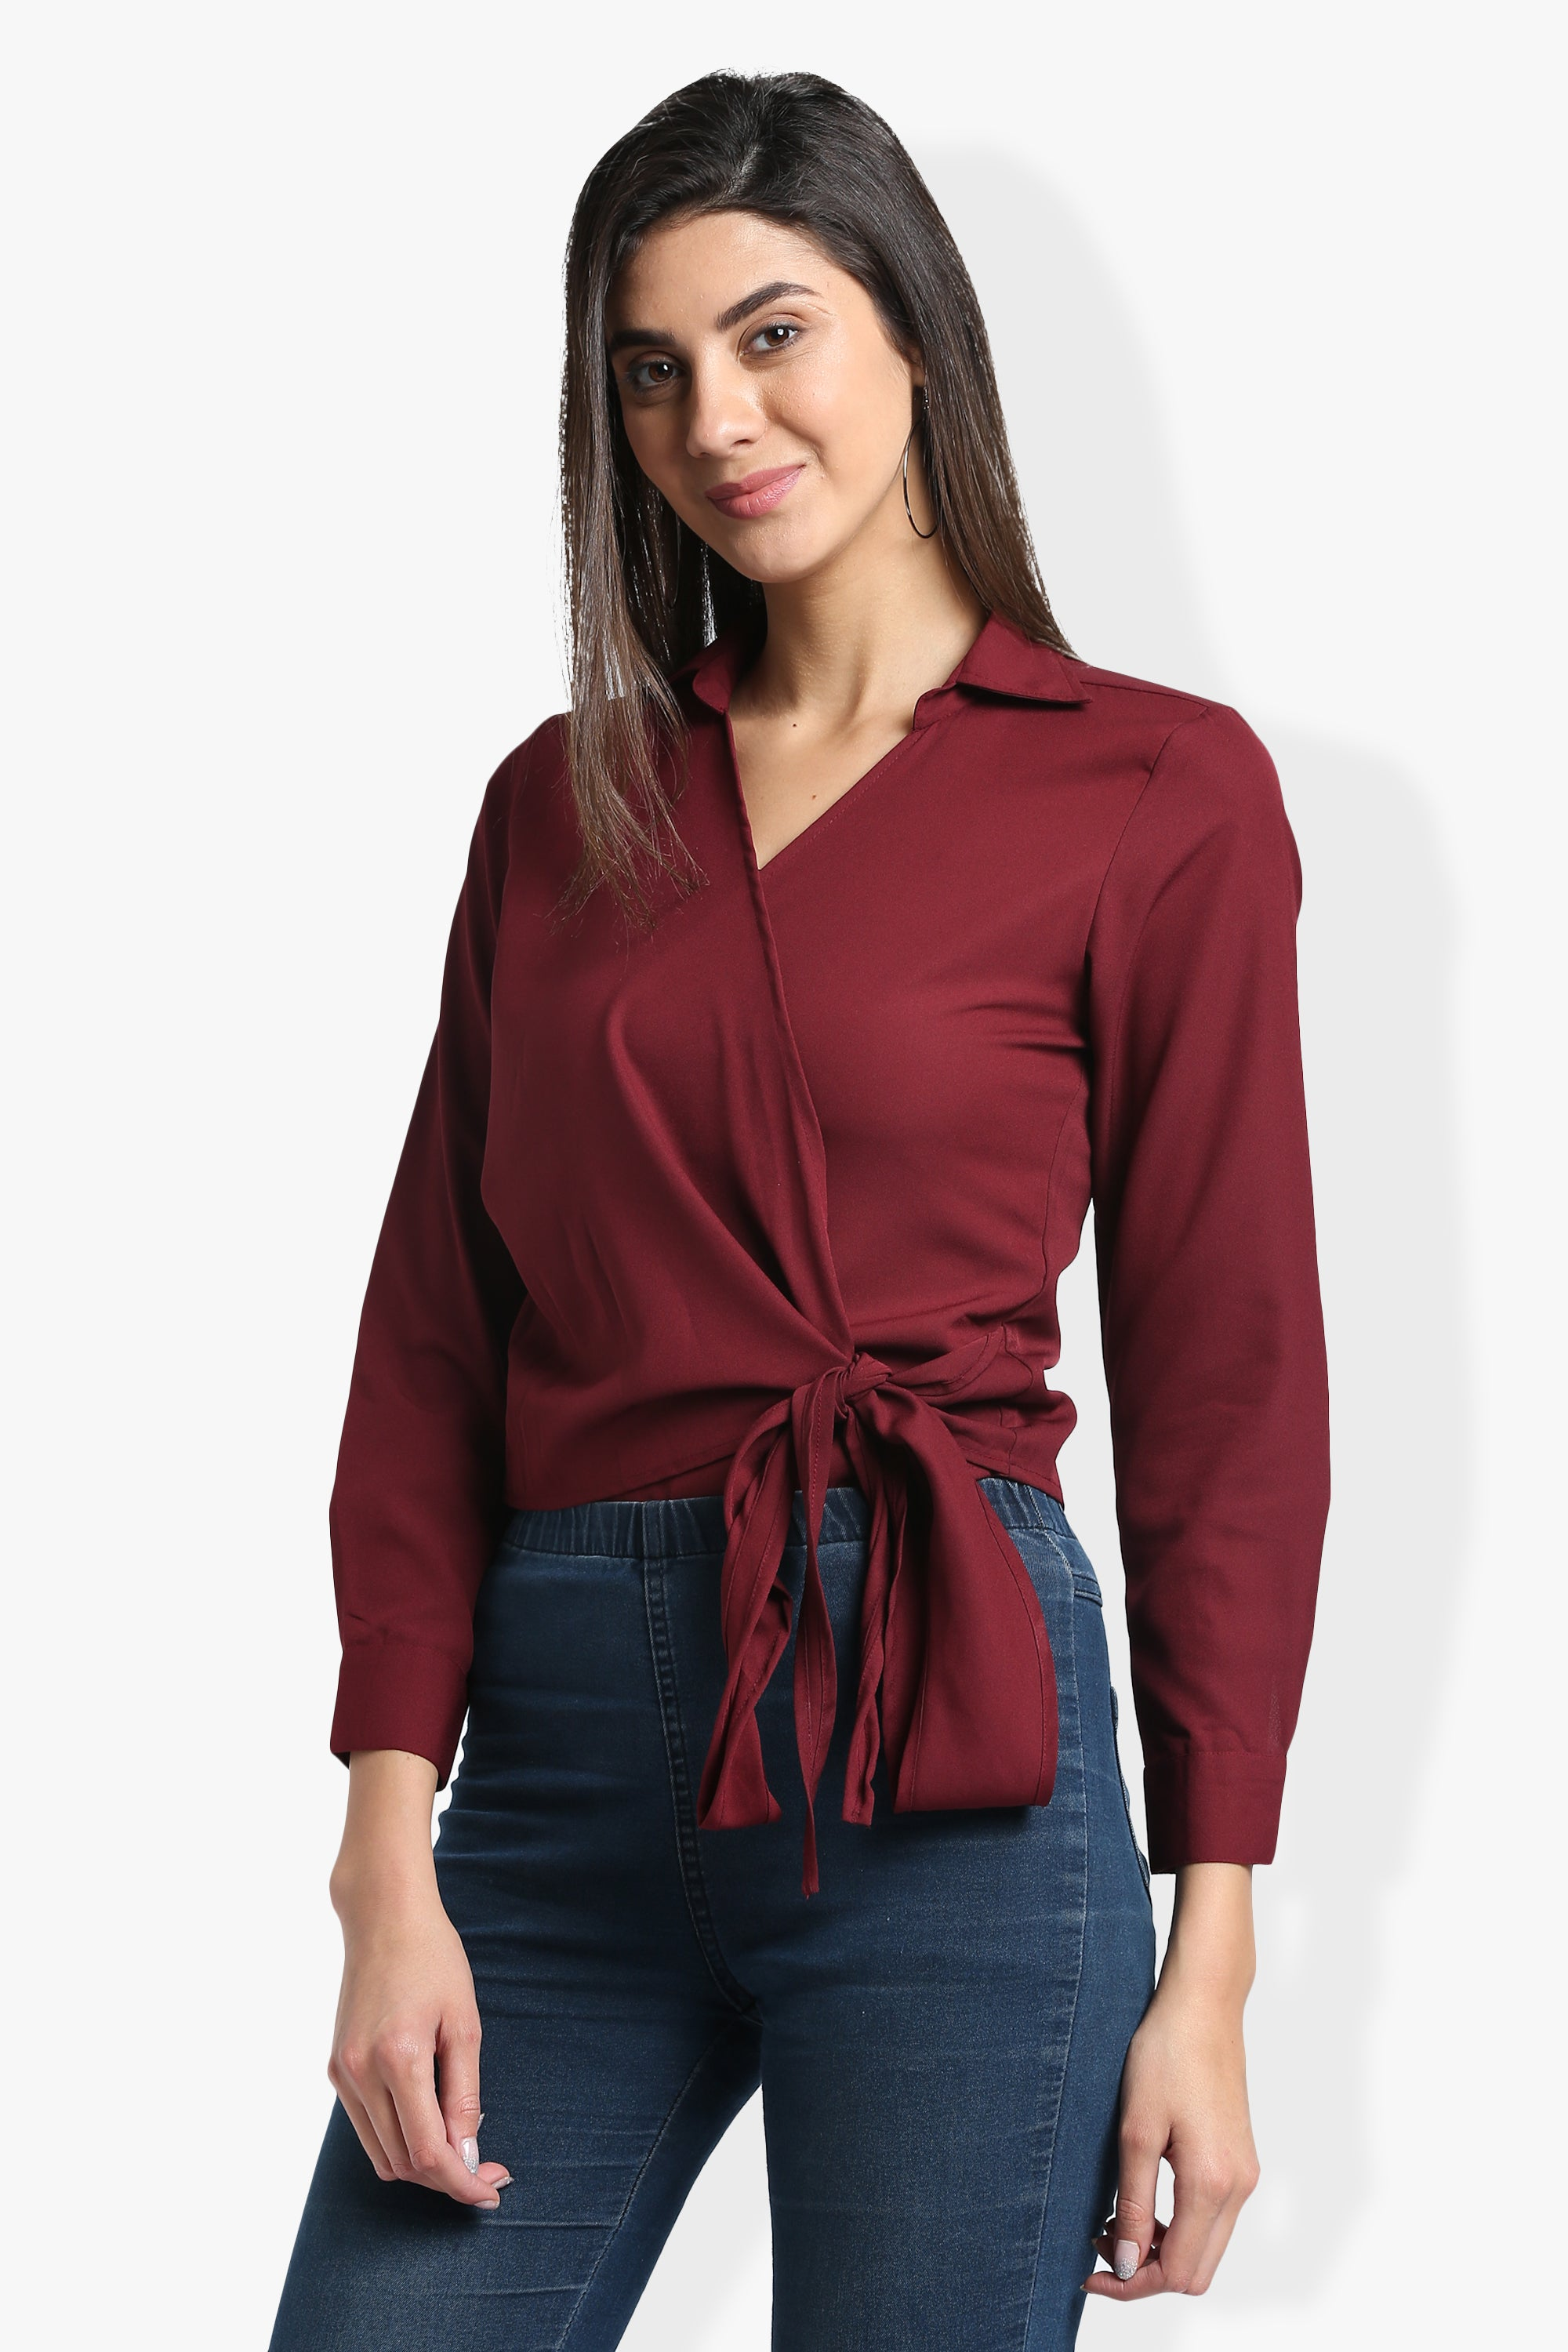 Solid Maroon Knot Top